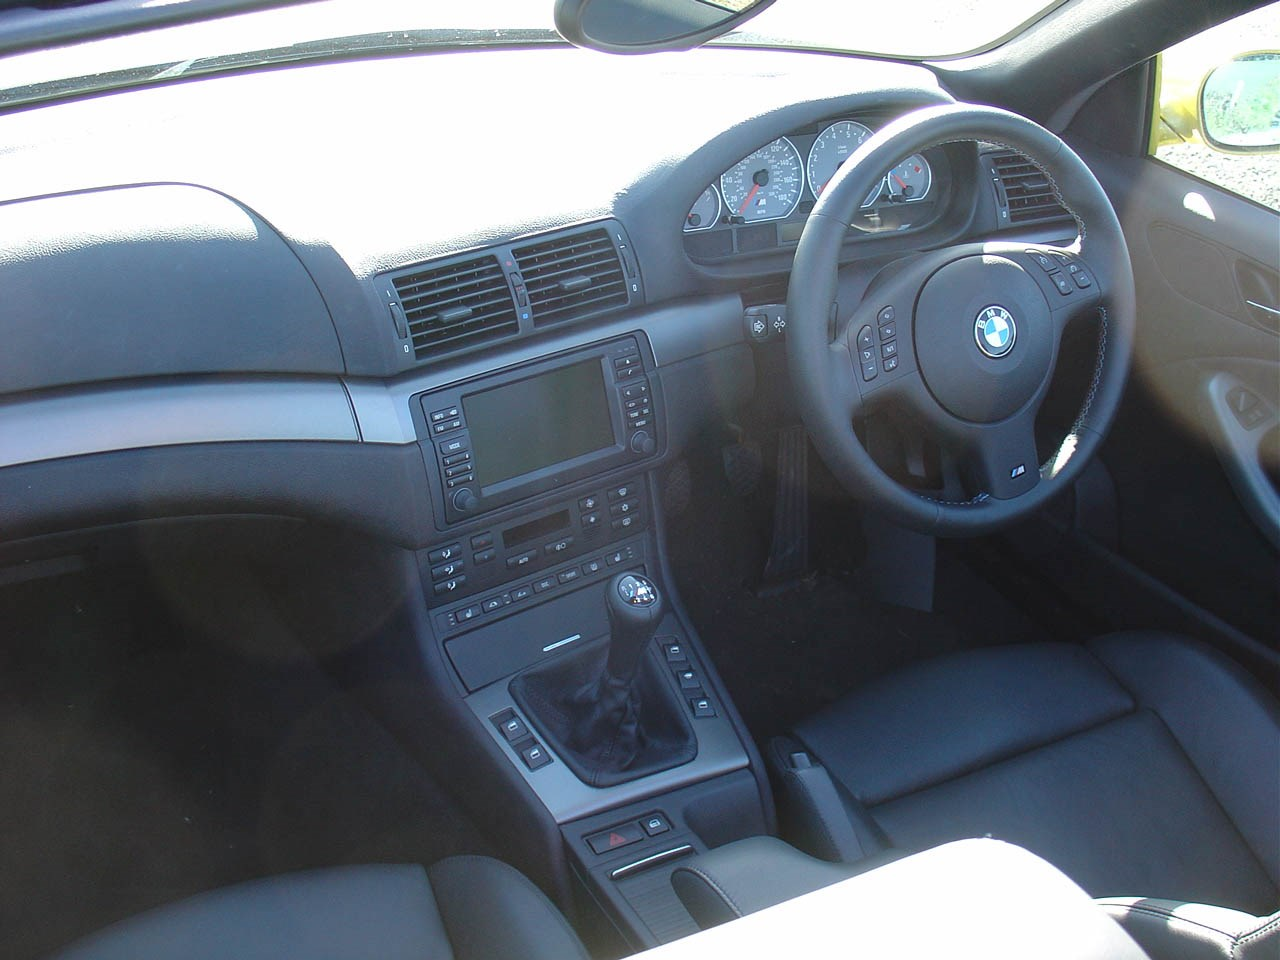 BMW Series M Convertible Review Parkers - 2006 bmw 325i features